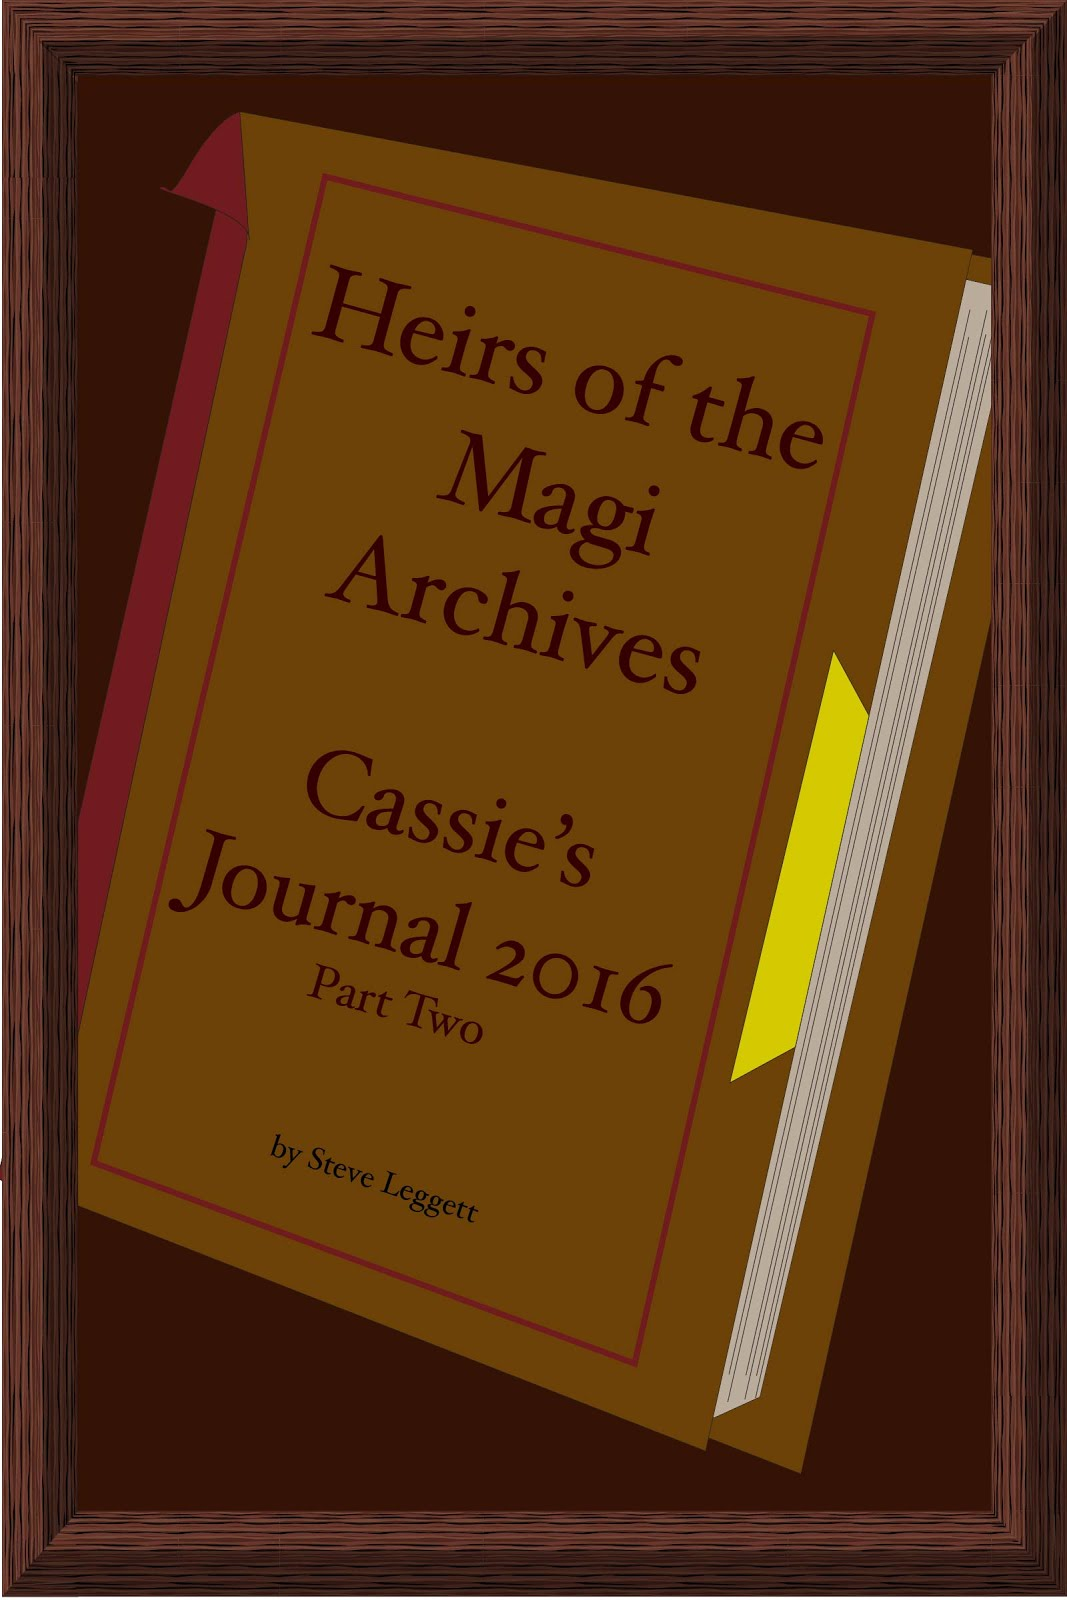 Cassie's Journal 2016 Part Two